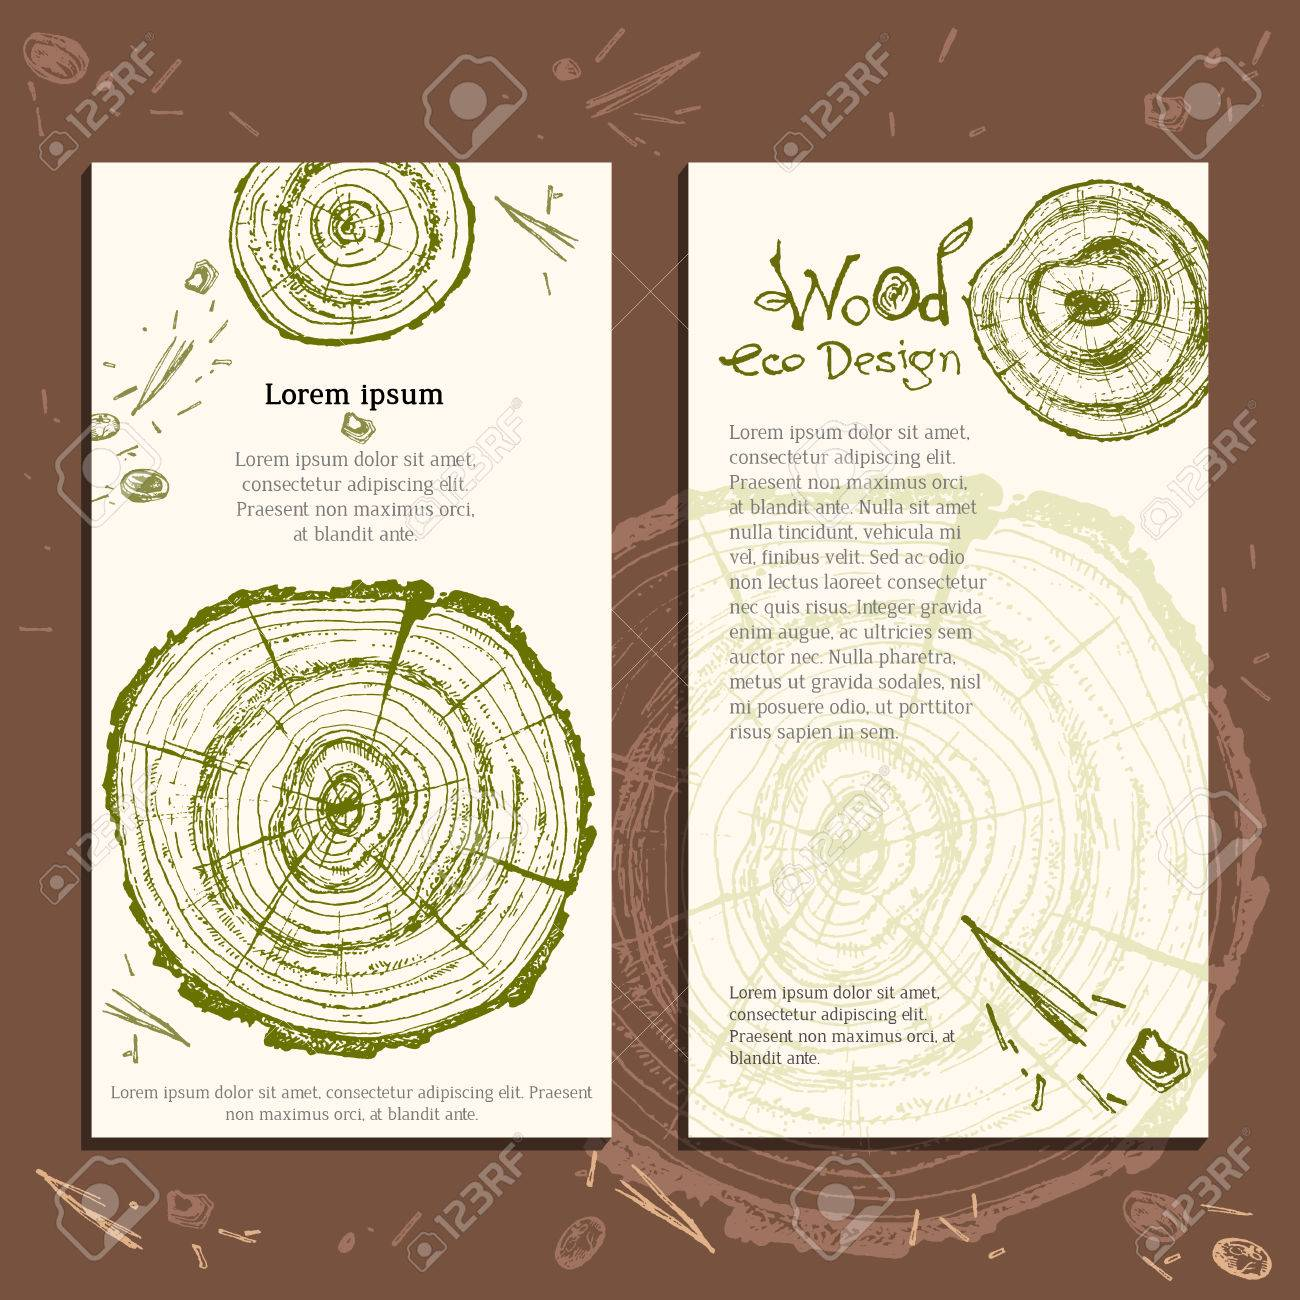 Hand drawn vector wooden slice. Pine tree. Organic modern ecological design. Natural green and brown colors template. Forest floor. Ready design. - 63520491